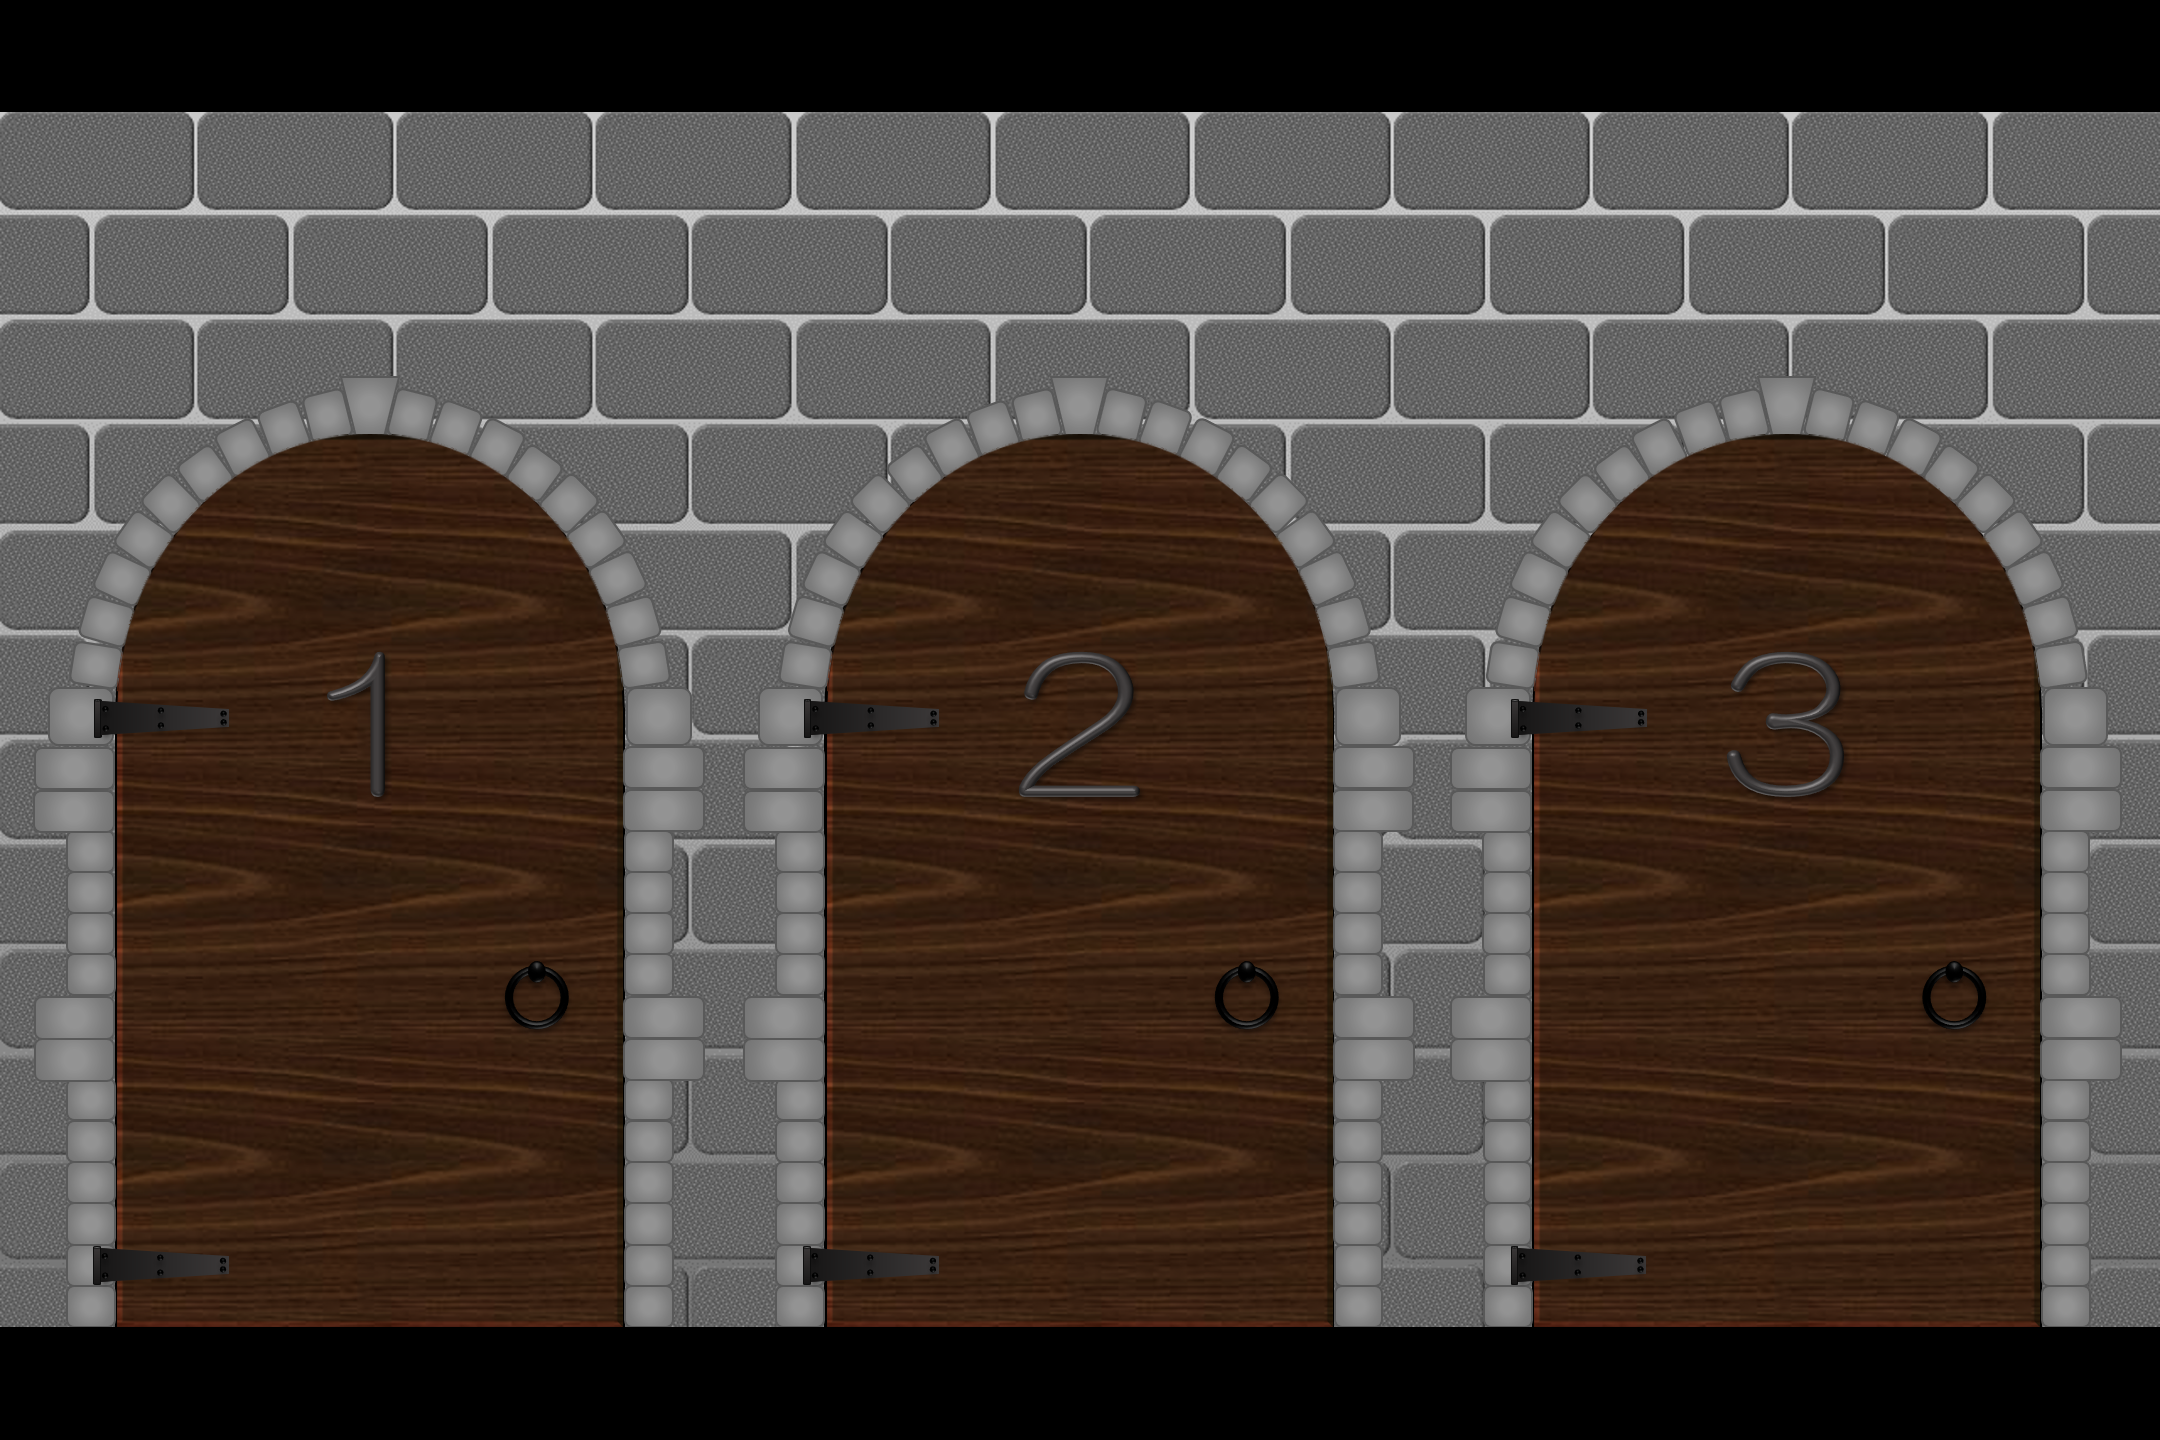 Download the Mystery Door Game  sc 1 st  tekhnologic - WordPress.com & The Mystery Door Game \u2013 tekhnologic